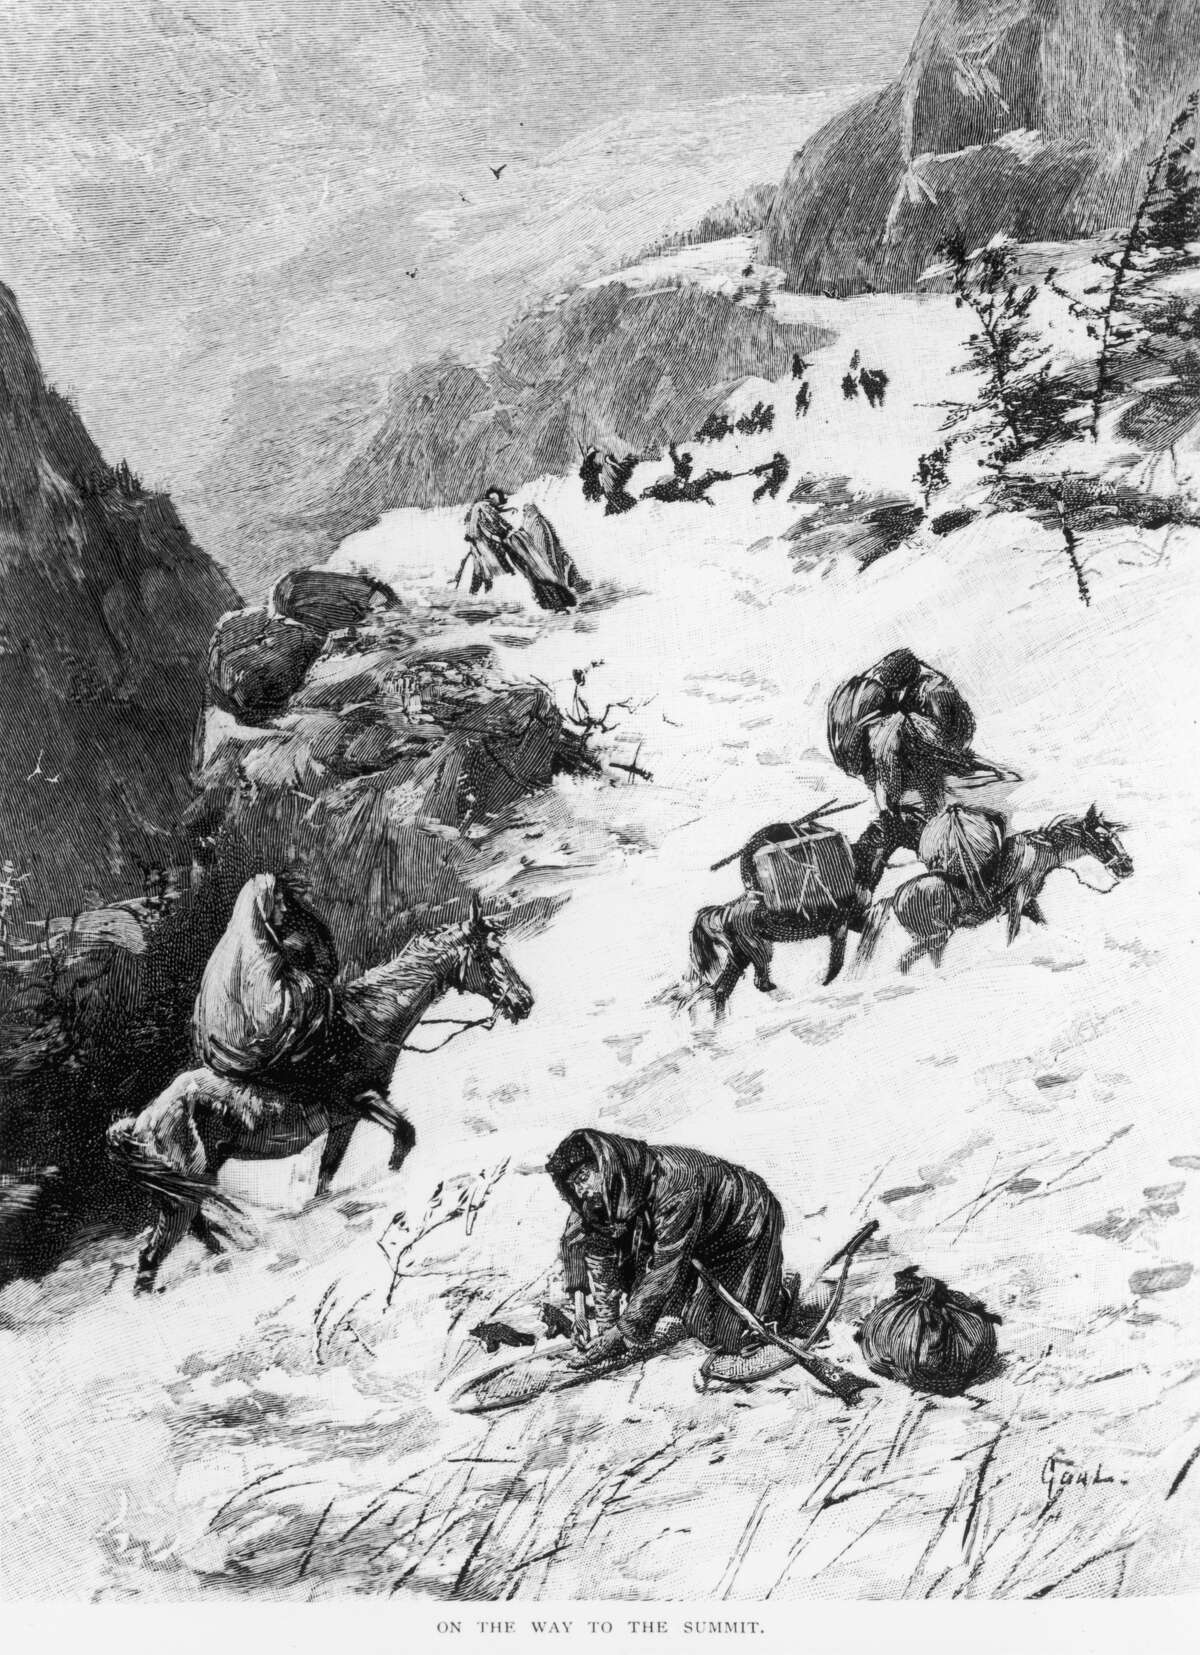 The Donner Party Begins Its Trek April 14, 1846 - The Reed and Donner families leave Missouri headed to California for a new life. Along the way, they get lost in present-day Utah and Nevada. Winter storms beset them, supplies run low and the trip intended to be over by the fall stretches into the winter in the high western mountains. Out of food, some members of the party resort to cannibalism of the already dead to stay alive. Only 48 members of the 87-person party make it to California.